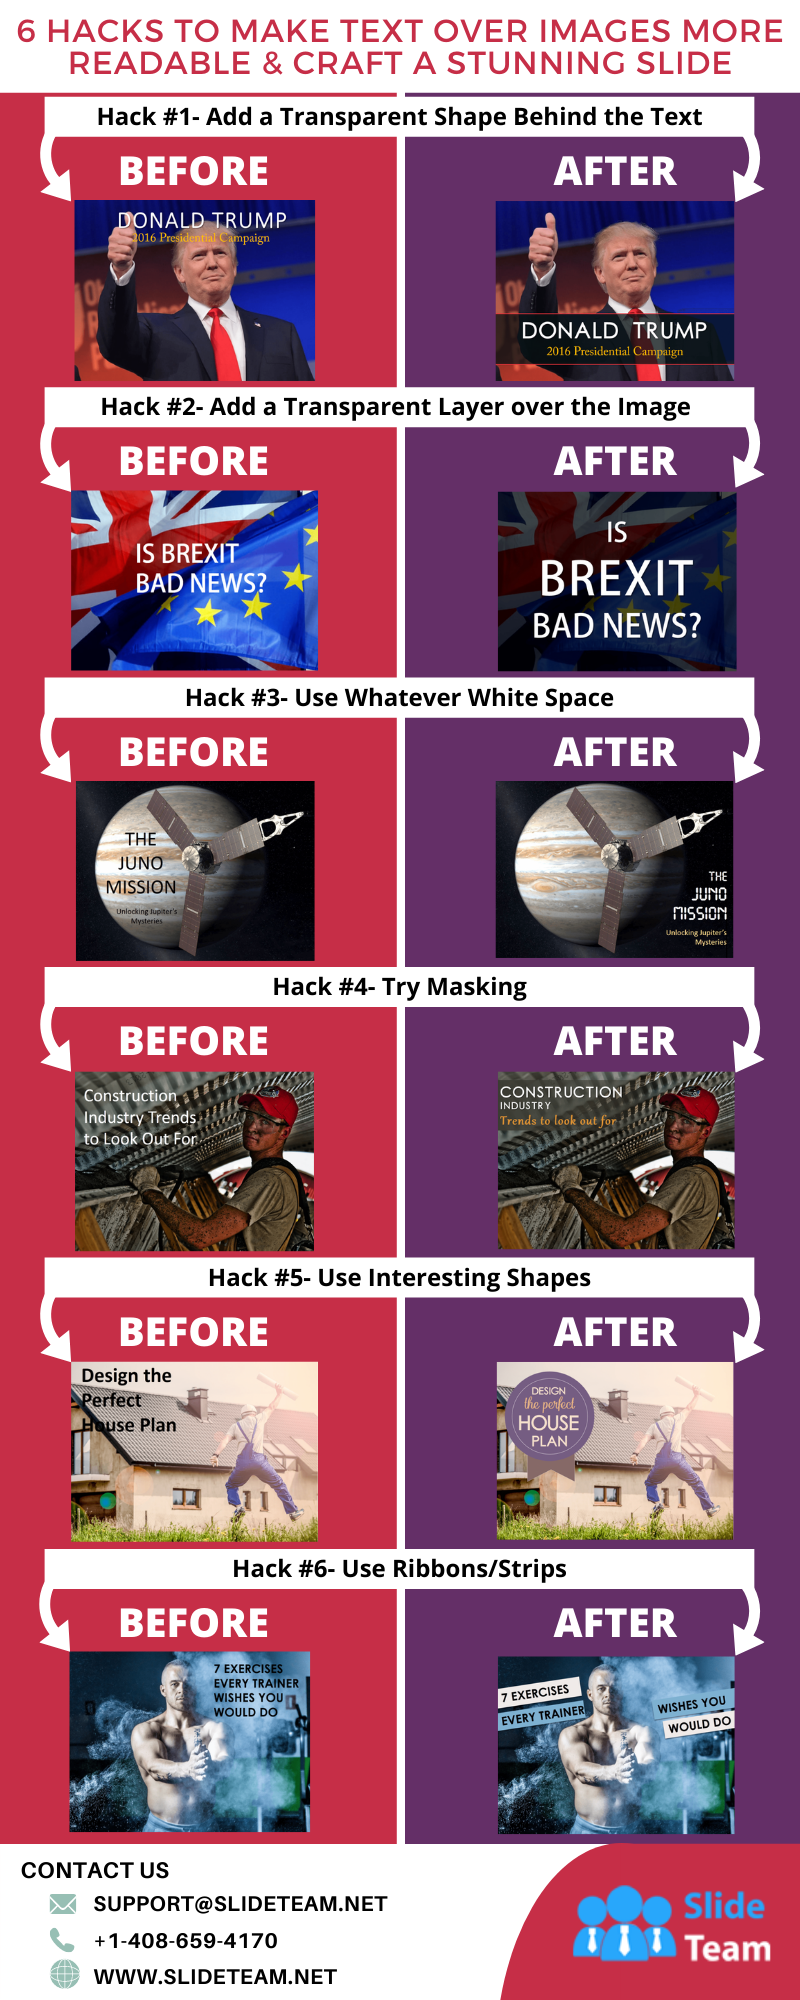 11 Hacks to Make Text Over Images More Readable & Craft a Stunning Slide #infographic